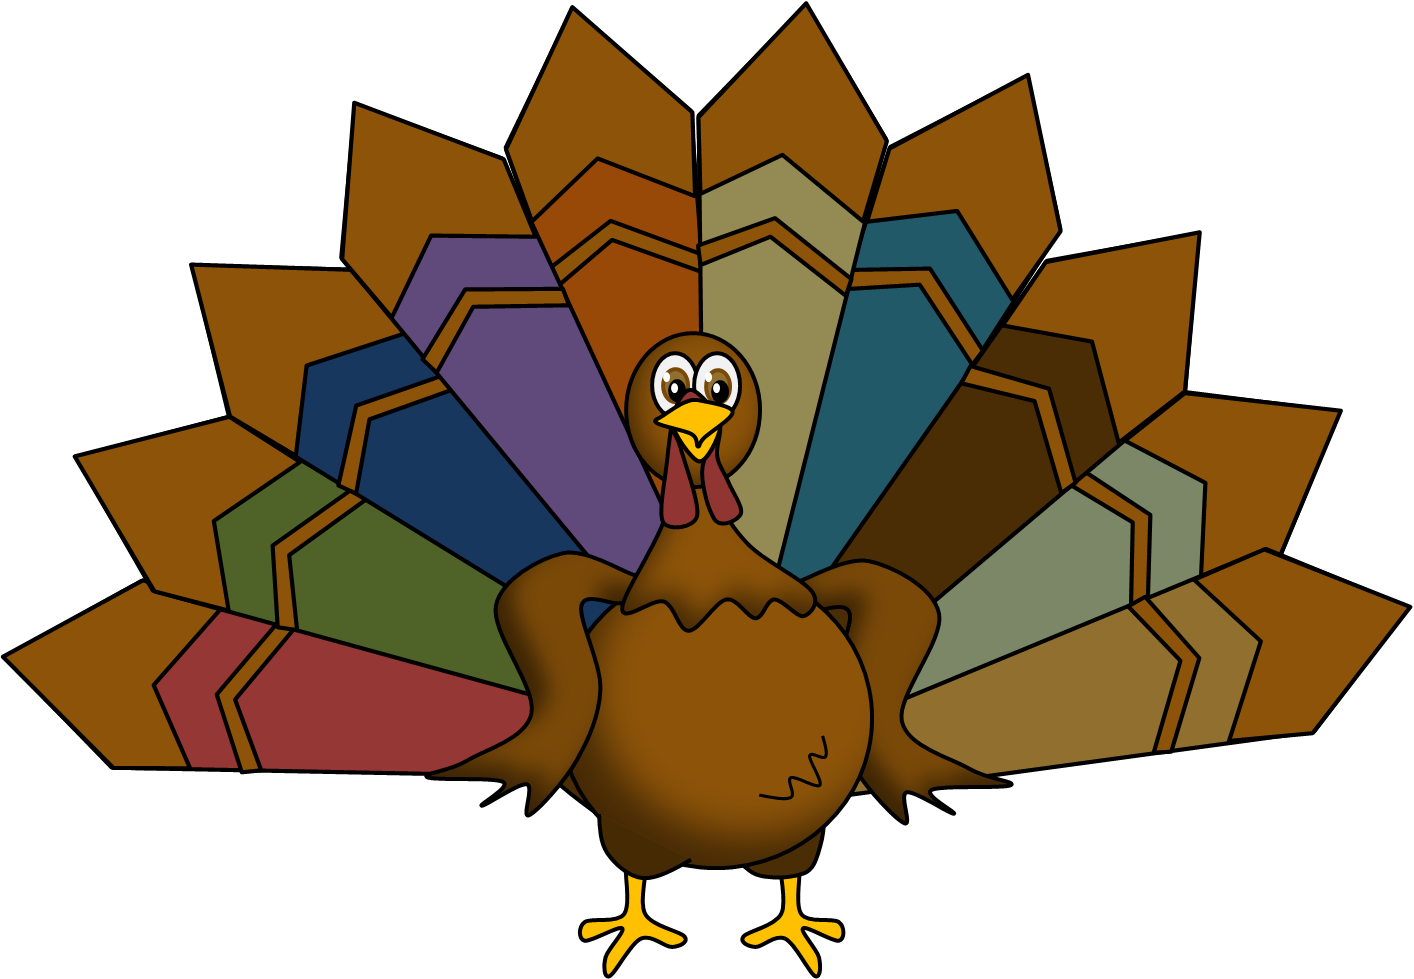 Thanksgiving feathers clipart clipart free library Turkey clipart turkey feather pencil and in color png - Clipartix clipart free library